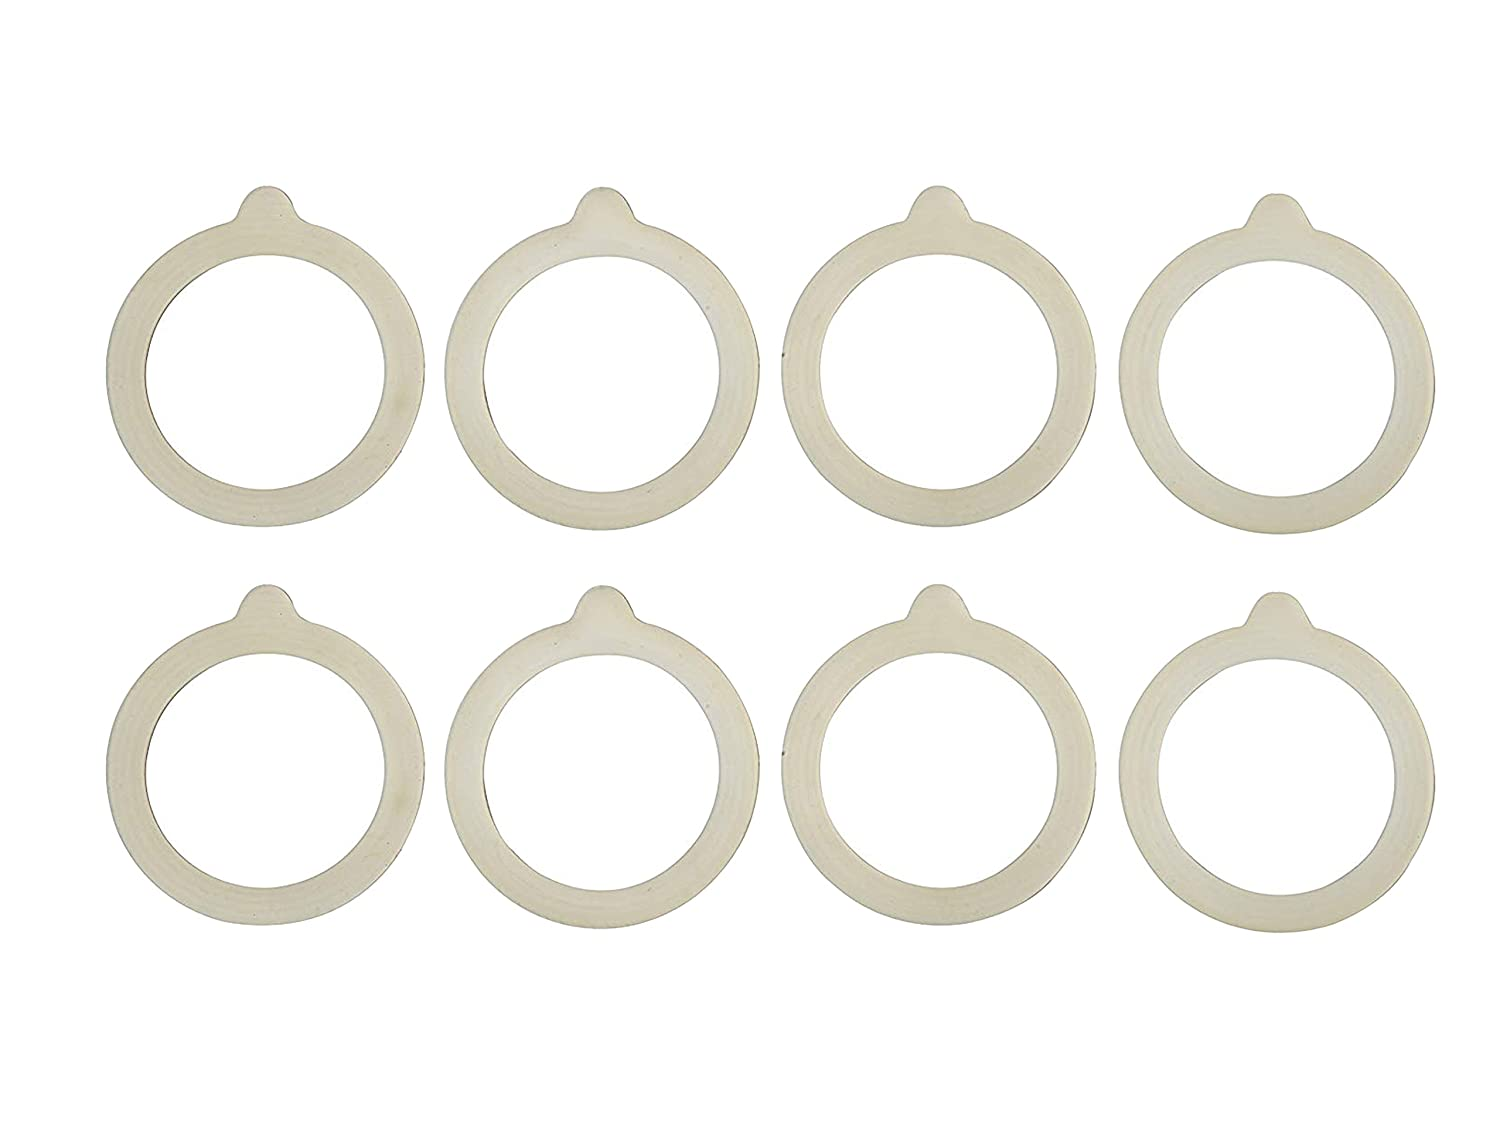 HIC Silicone Replacement Gasket Seals, Fits Regular Mouth Canning Jars, 3.75 x 3.75-Inches, Set of 8